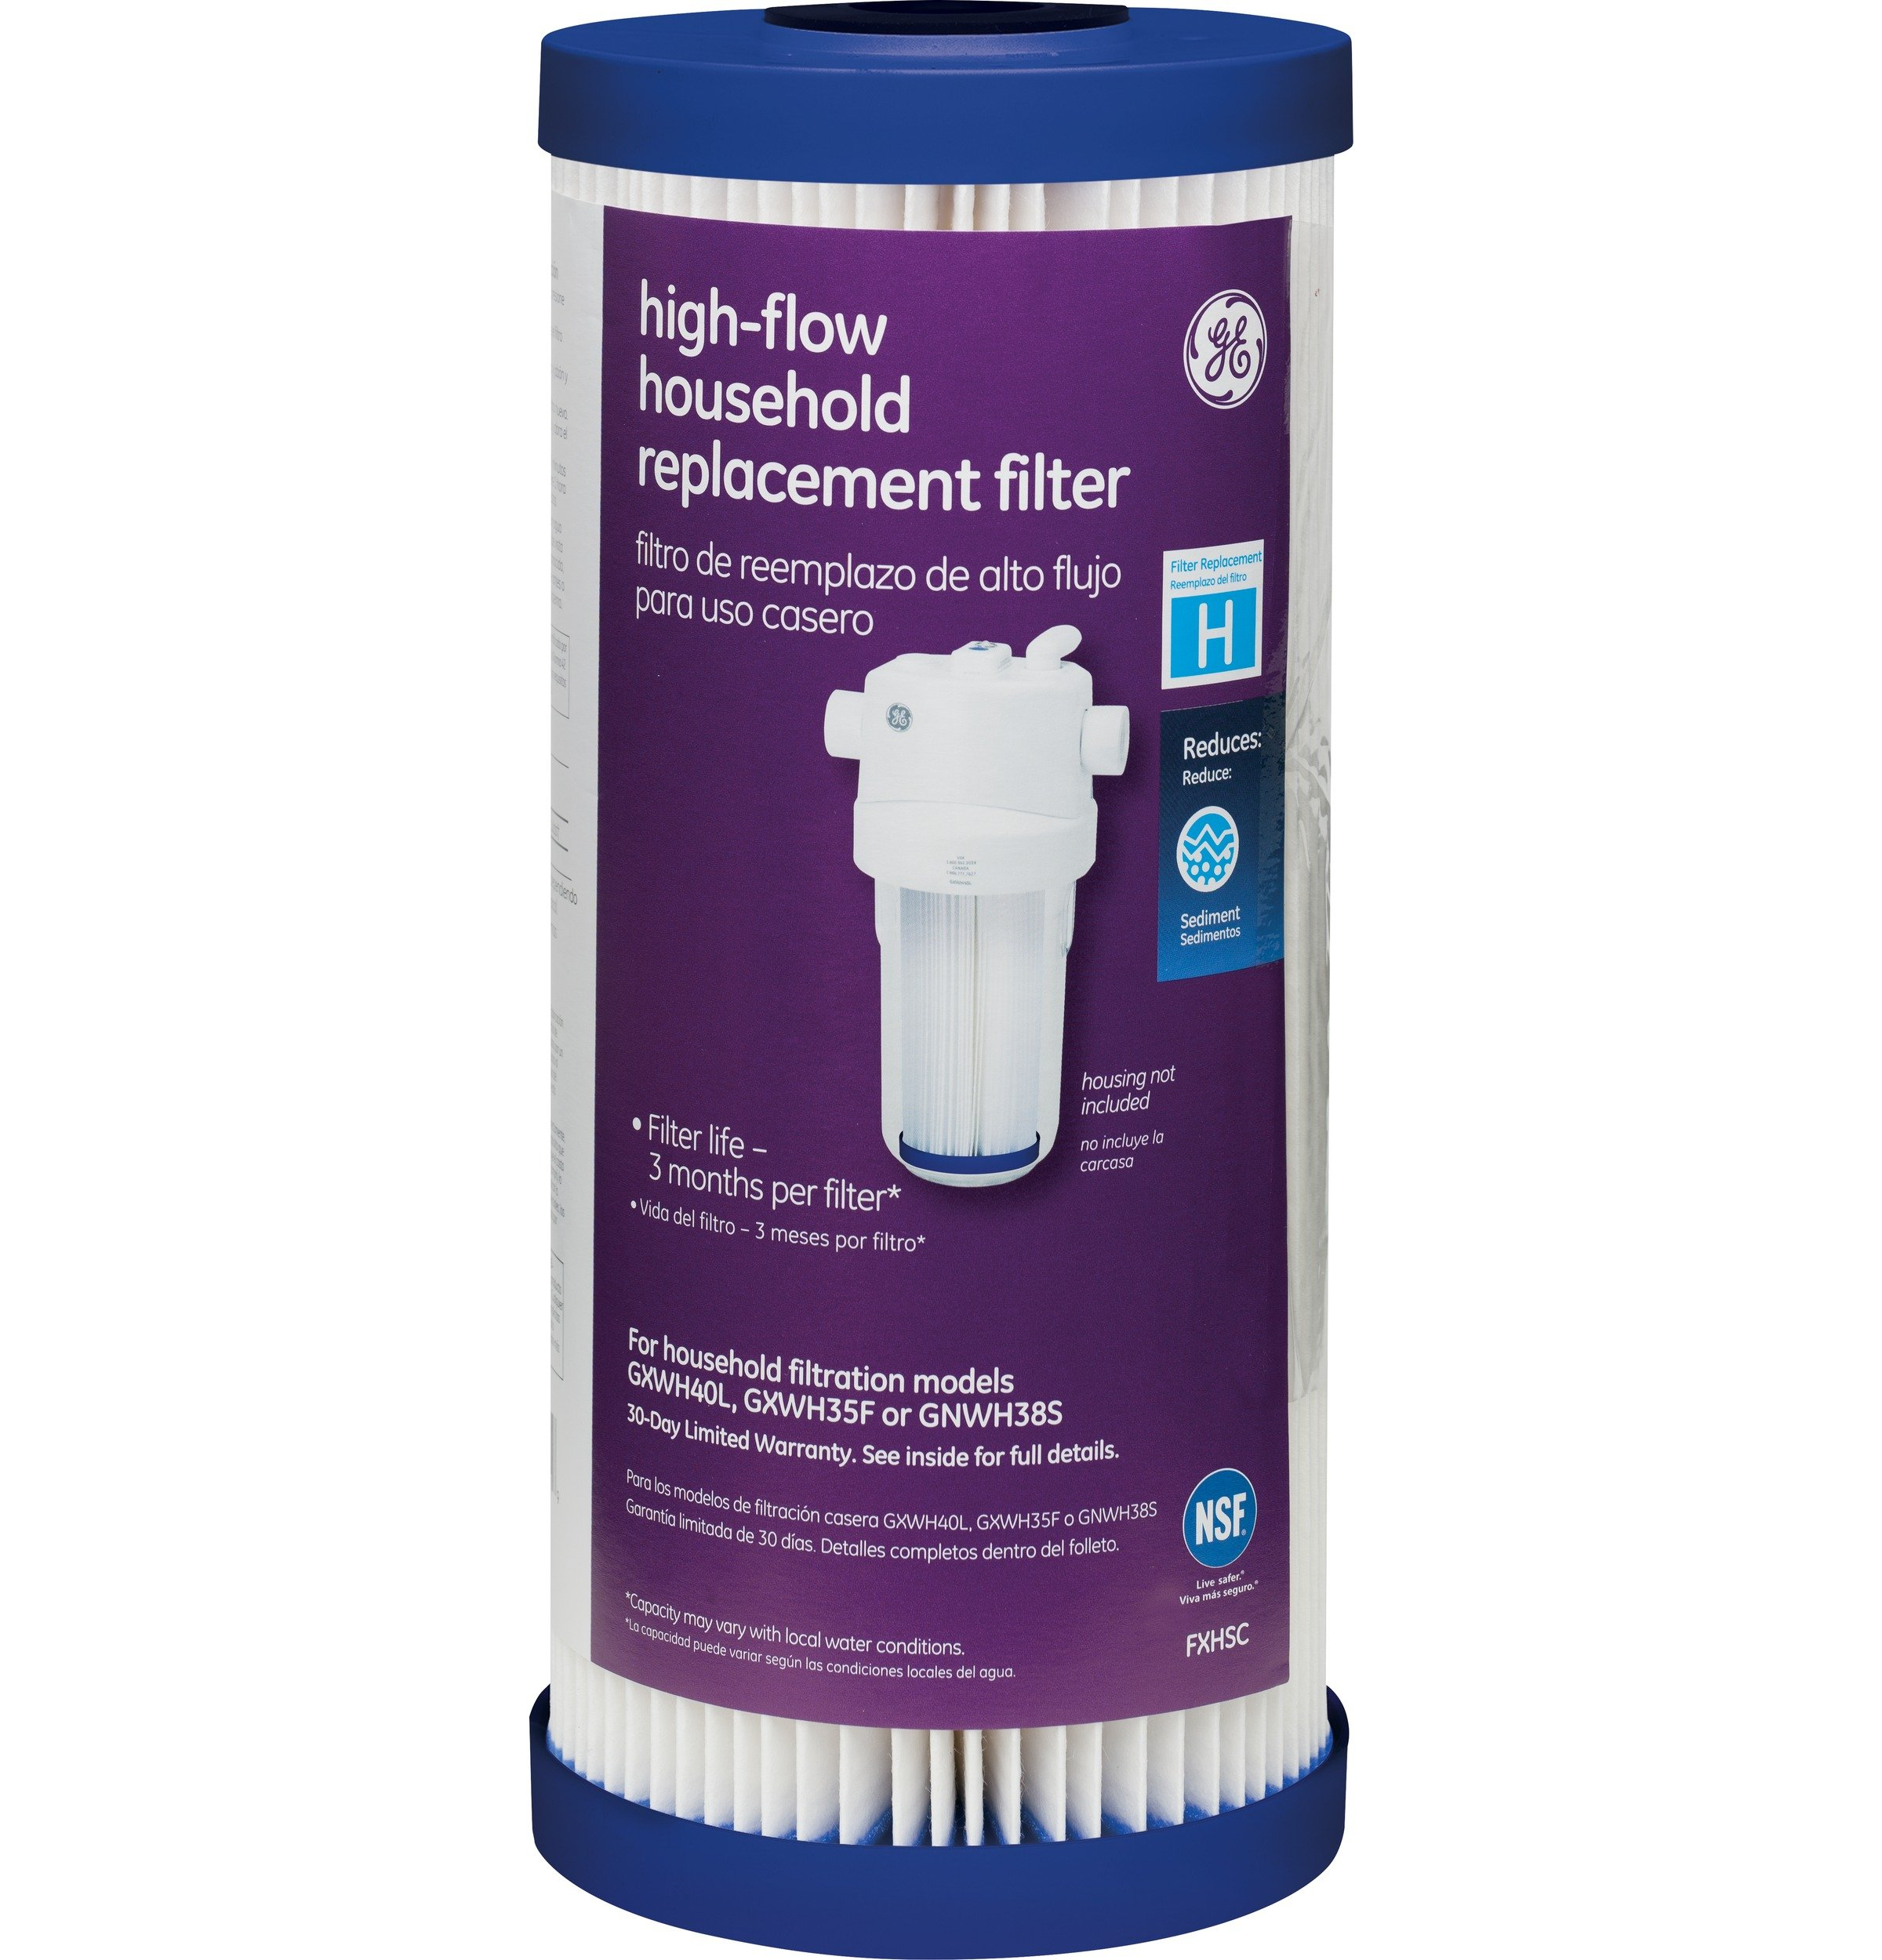 GE FXHSC Household Pre-Filtration Sediment Filter by GE